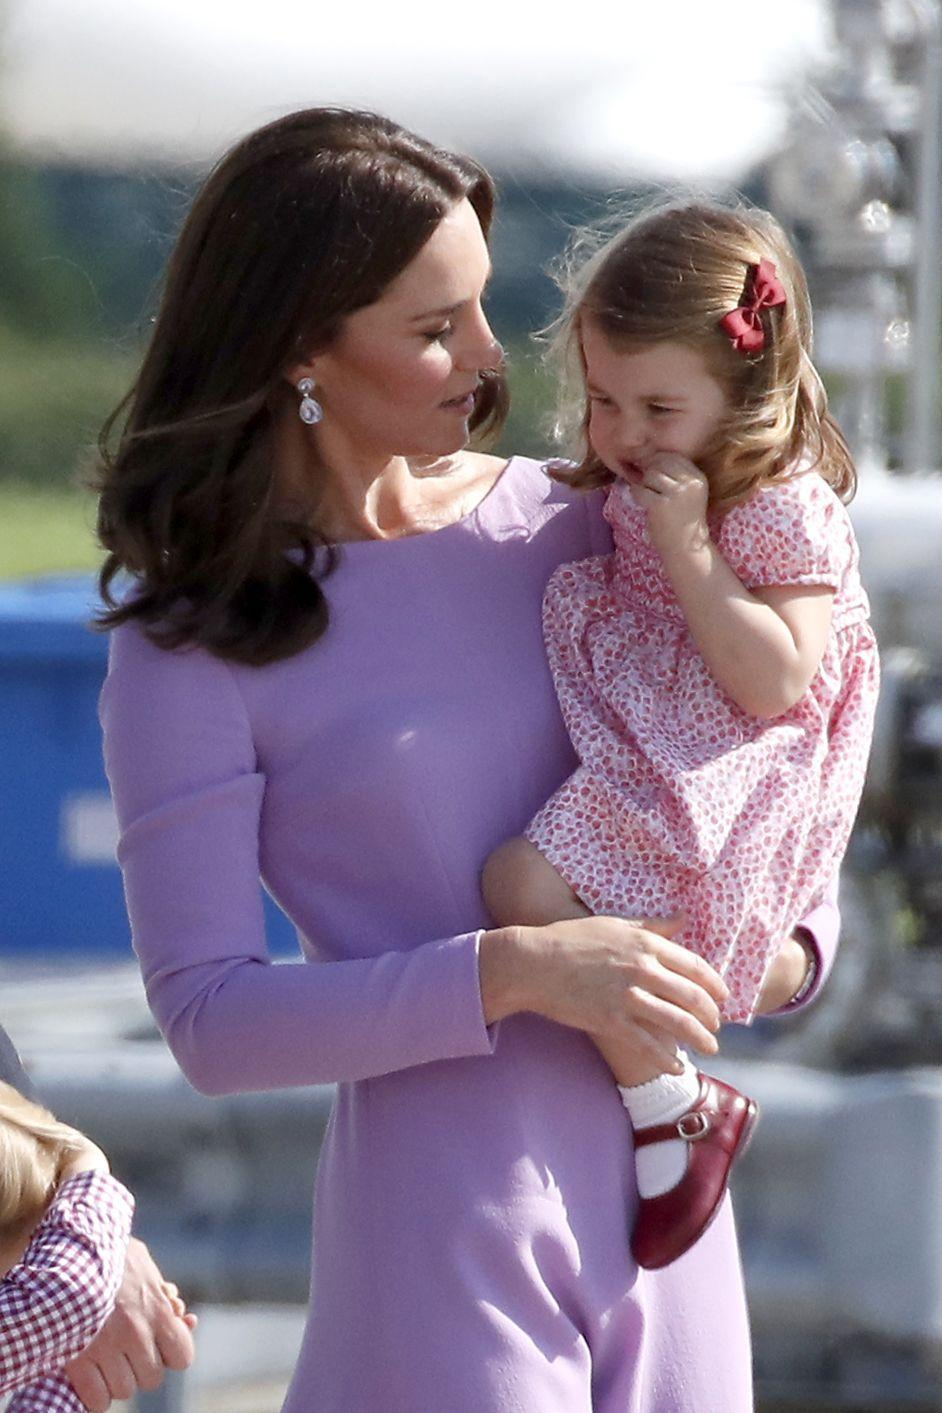 """<p>Princess Charlotte and her mom, Catherine, Duchess of Cambridge had a pastel mommy-and-me moment during the royals' official visit to Poland and Germany in July 2017. </p><p><strong>More:</strong> <a href=""""https://www.townandcountrymag.com/society/tradition/g9570478/princess-charlotte-photos-news/"""" rel=""""nofollow noopener"""" target=""""_blank"""" data-ylk=""""slk:The Sweetest Photos of Princess Charlotte"""" class=""""link rapid-noclick-resp"""">The Sweetest Photos of Princess Charlotte</a></p>"""